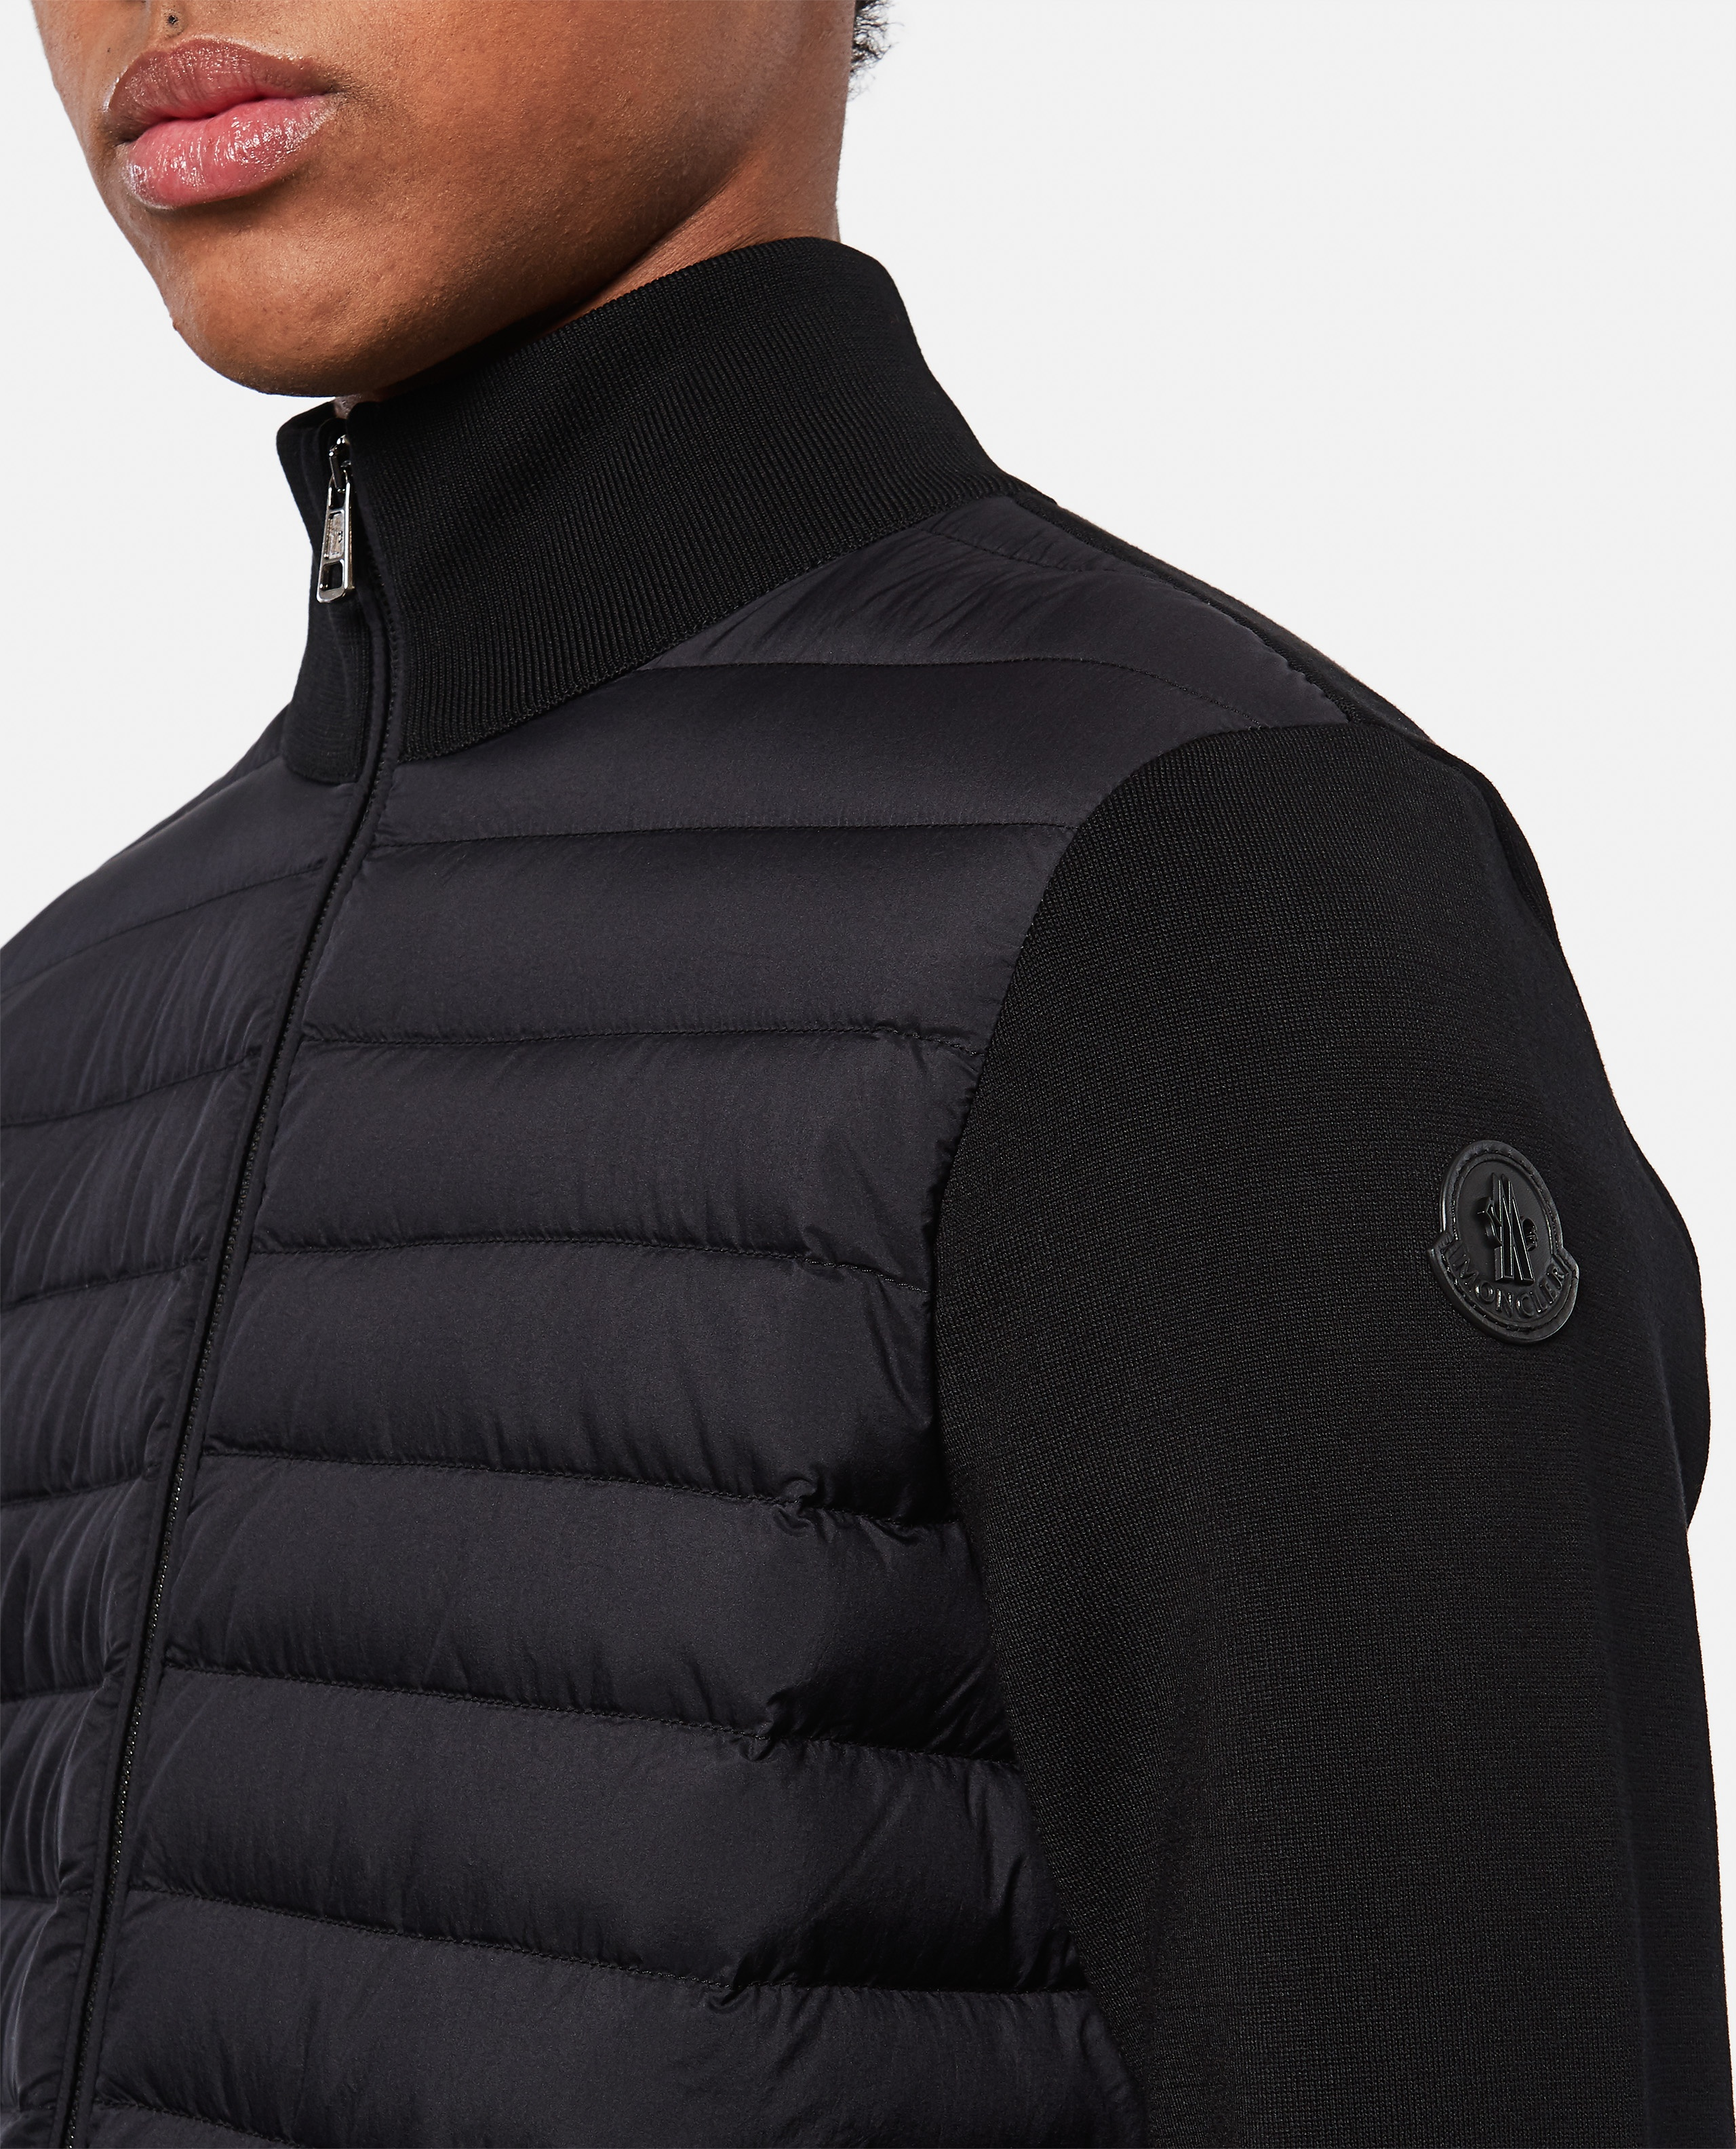 Tricot cardigan with padded detail Men Moncler 000315490046237 4